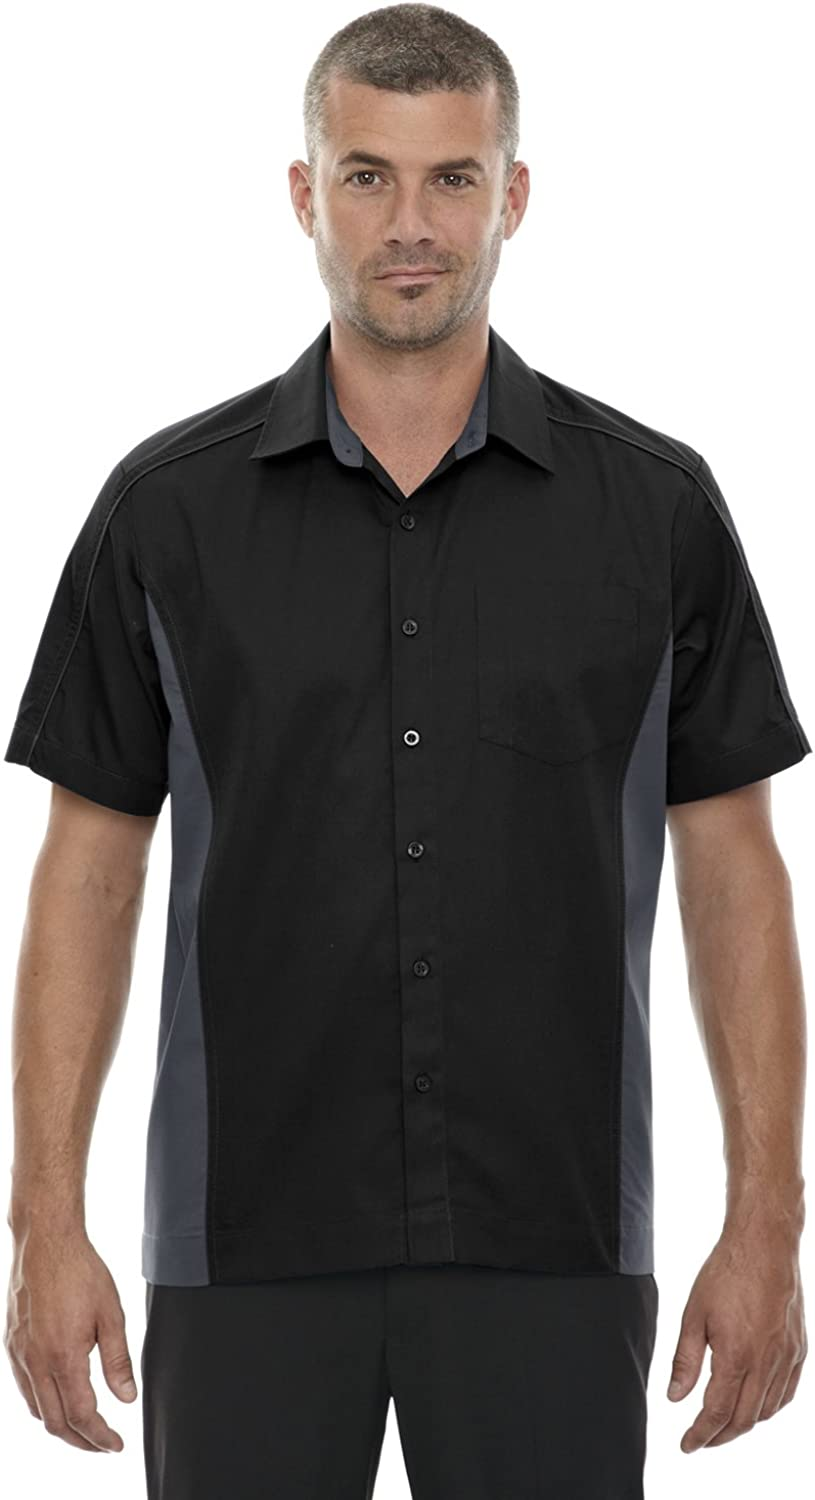 North End Fuse Men's Spread Collar Tall Shirt